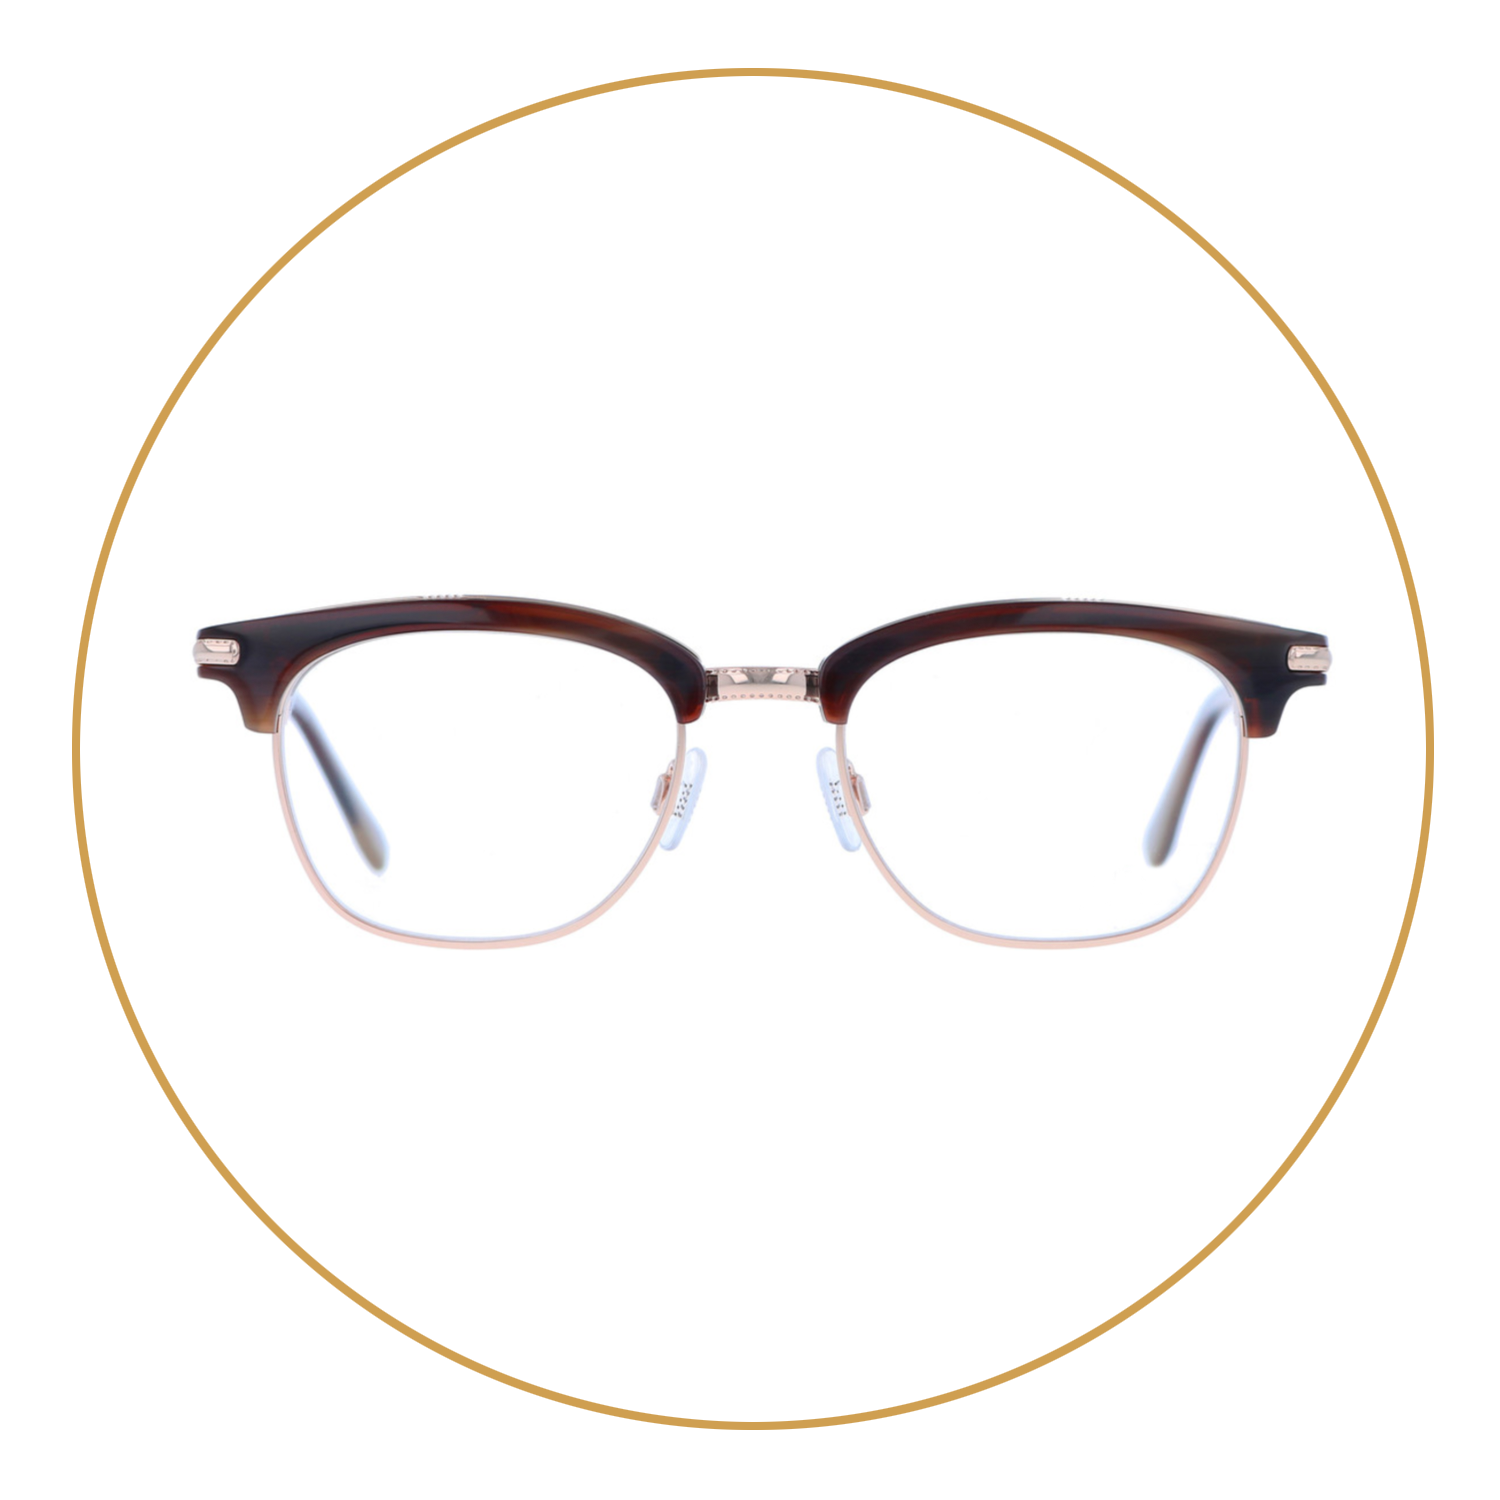 Clubmaster Browline - This classic men's style is the male version of the cat-eye. It's a nod to the 50s and 60s with a literary sensibility and a polished profile.